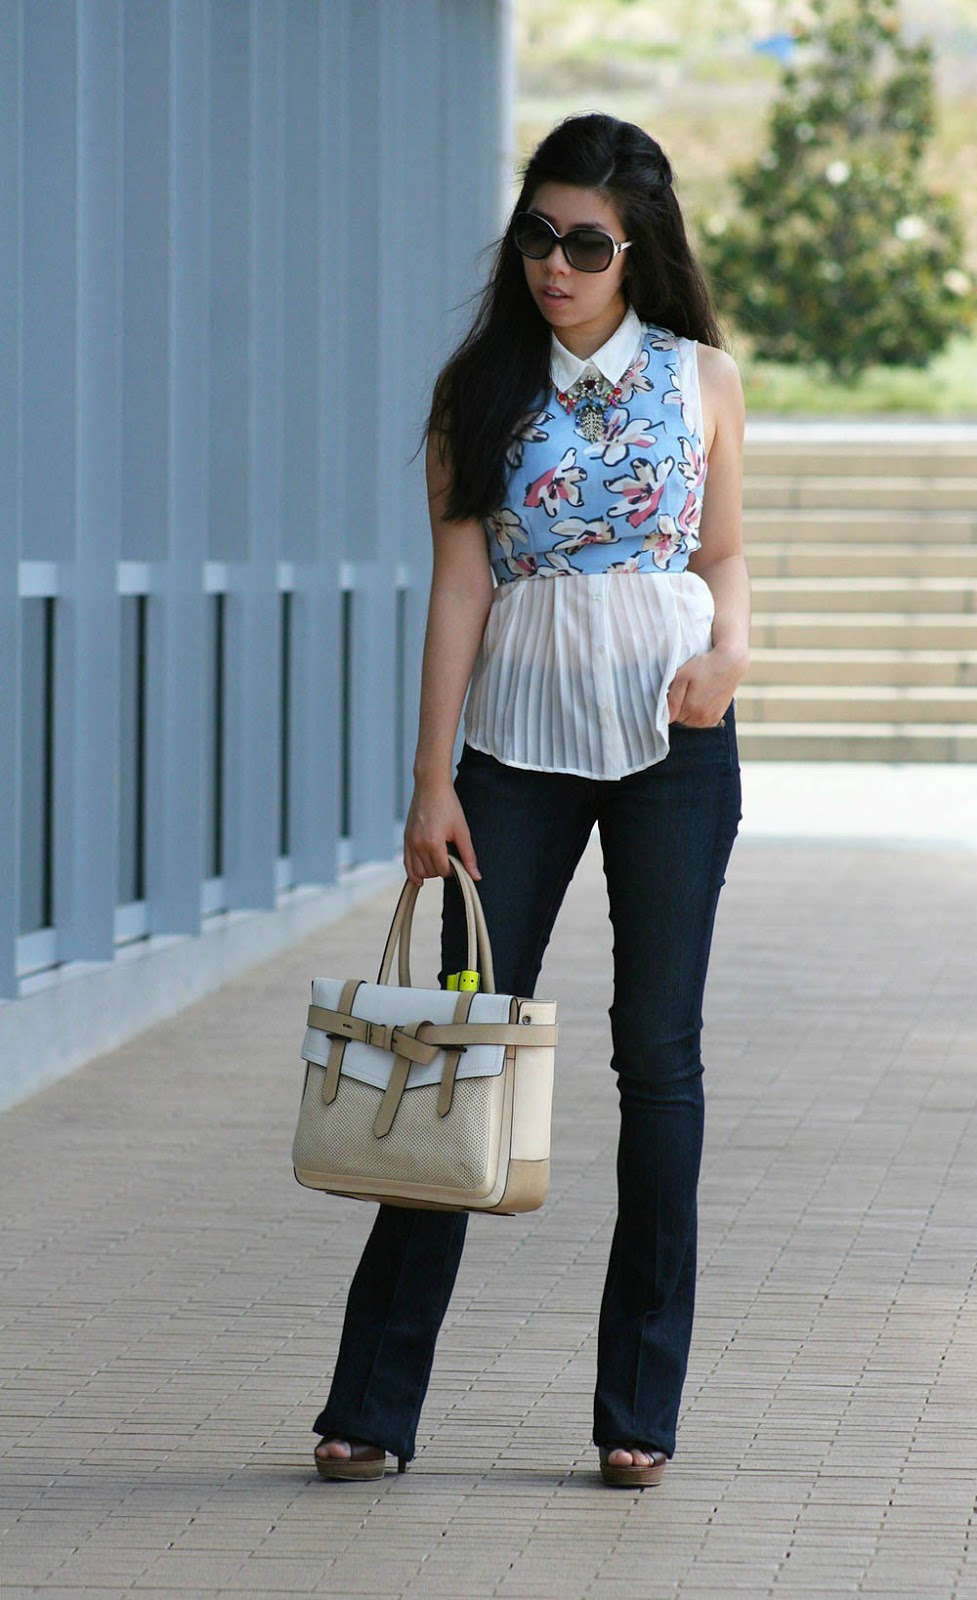 adrienne nguyen_invictus_orange county fashion blogger_asian model_petite fashion blogger _ wear flare jeans to make you look taller